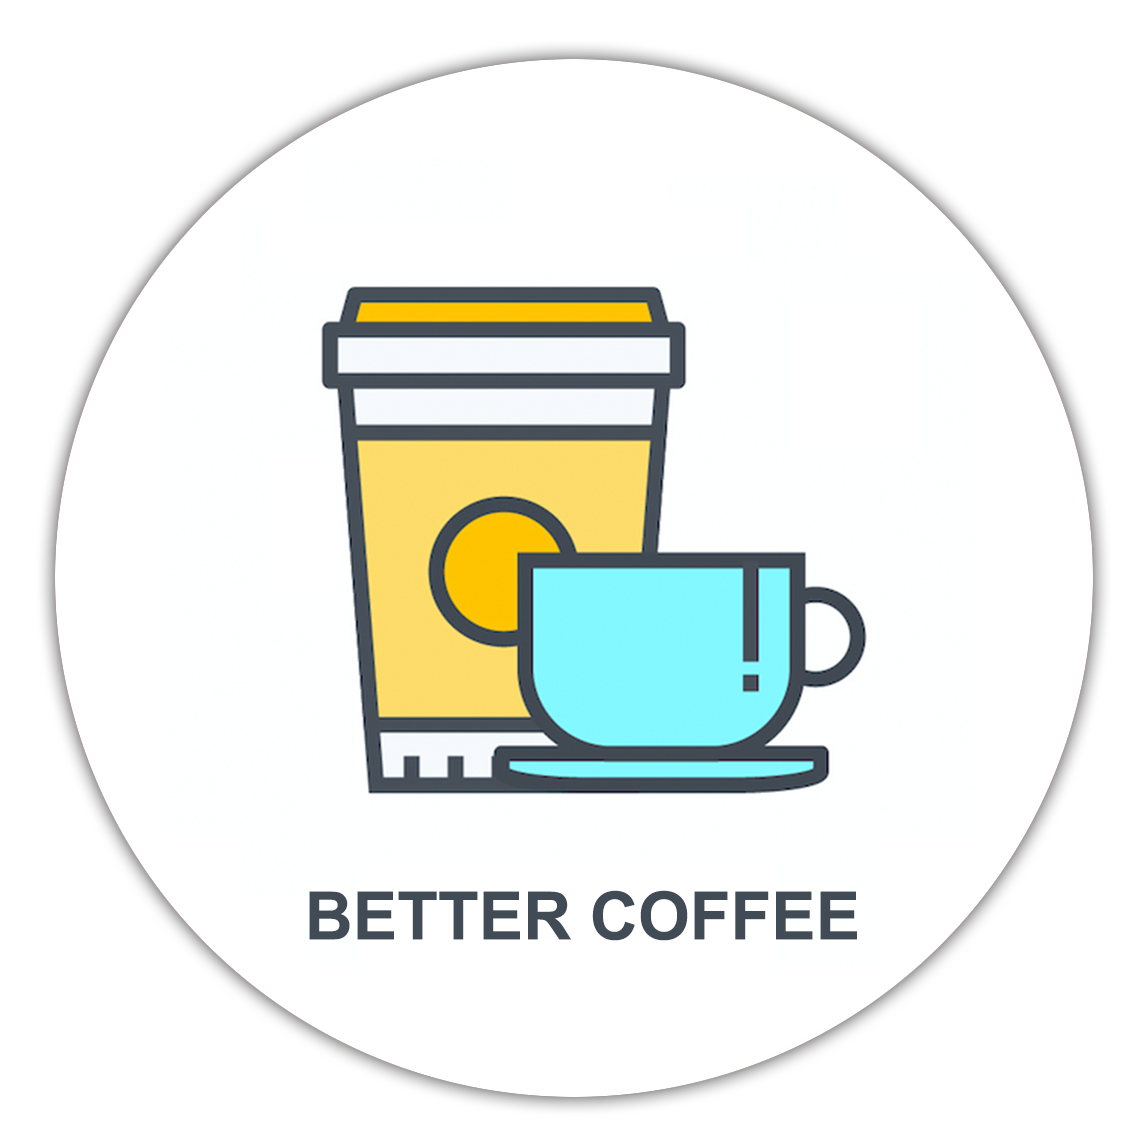 better tasting coffee and drinks